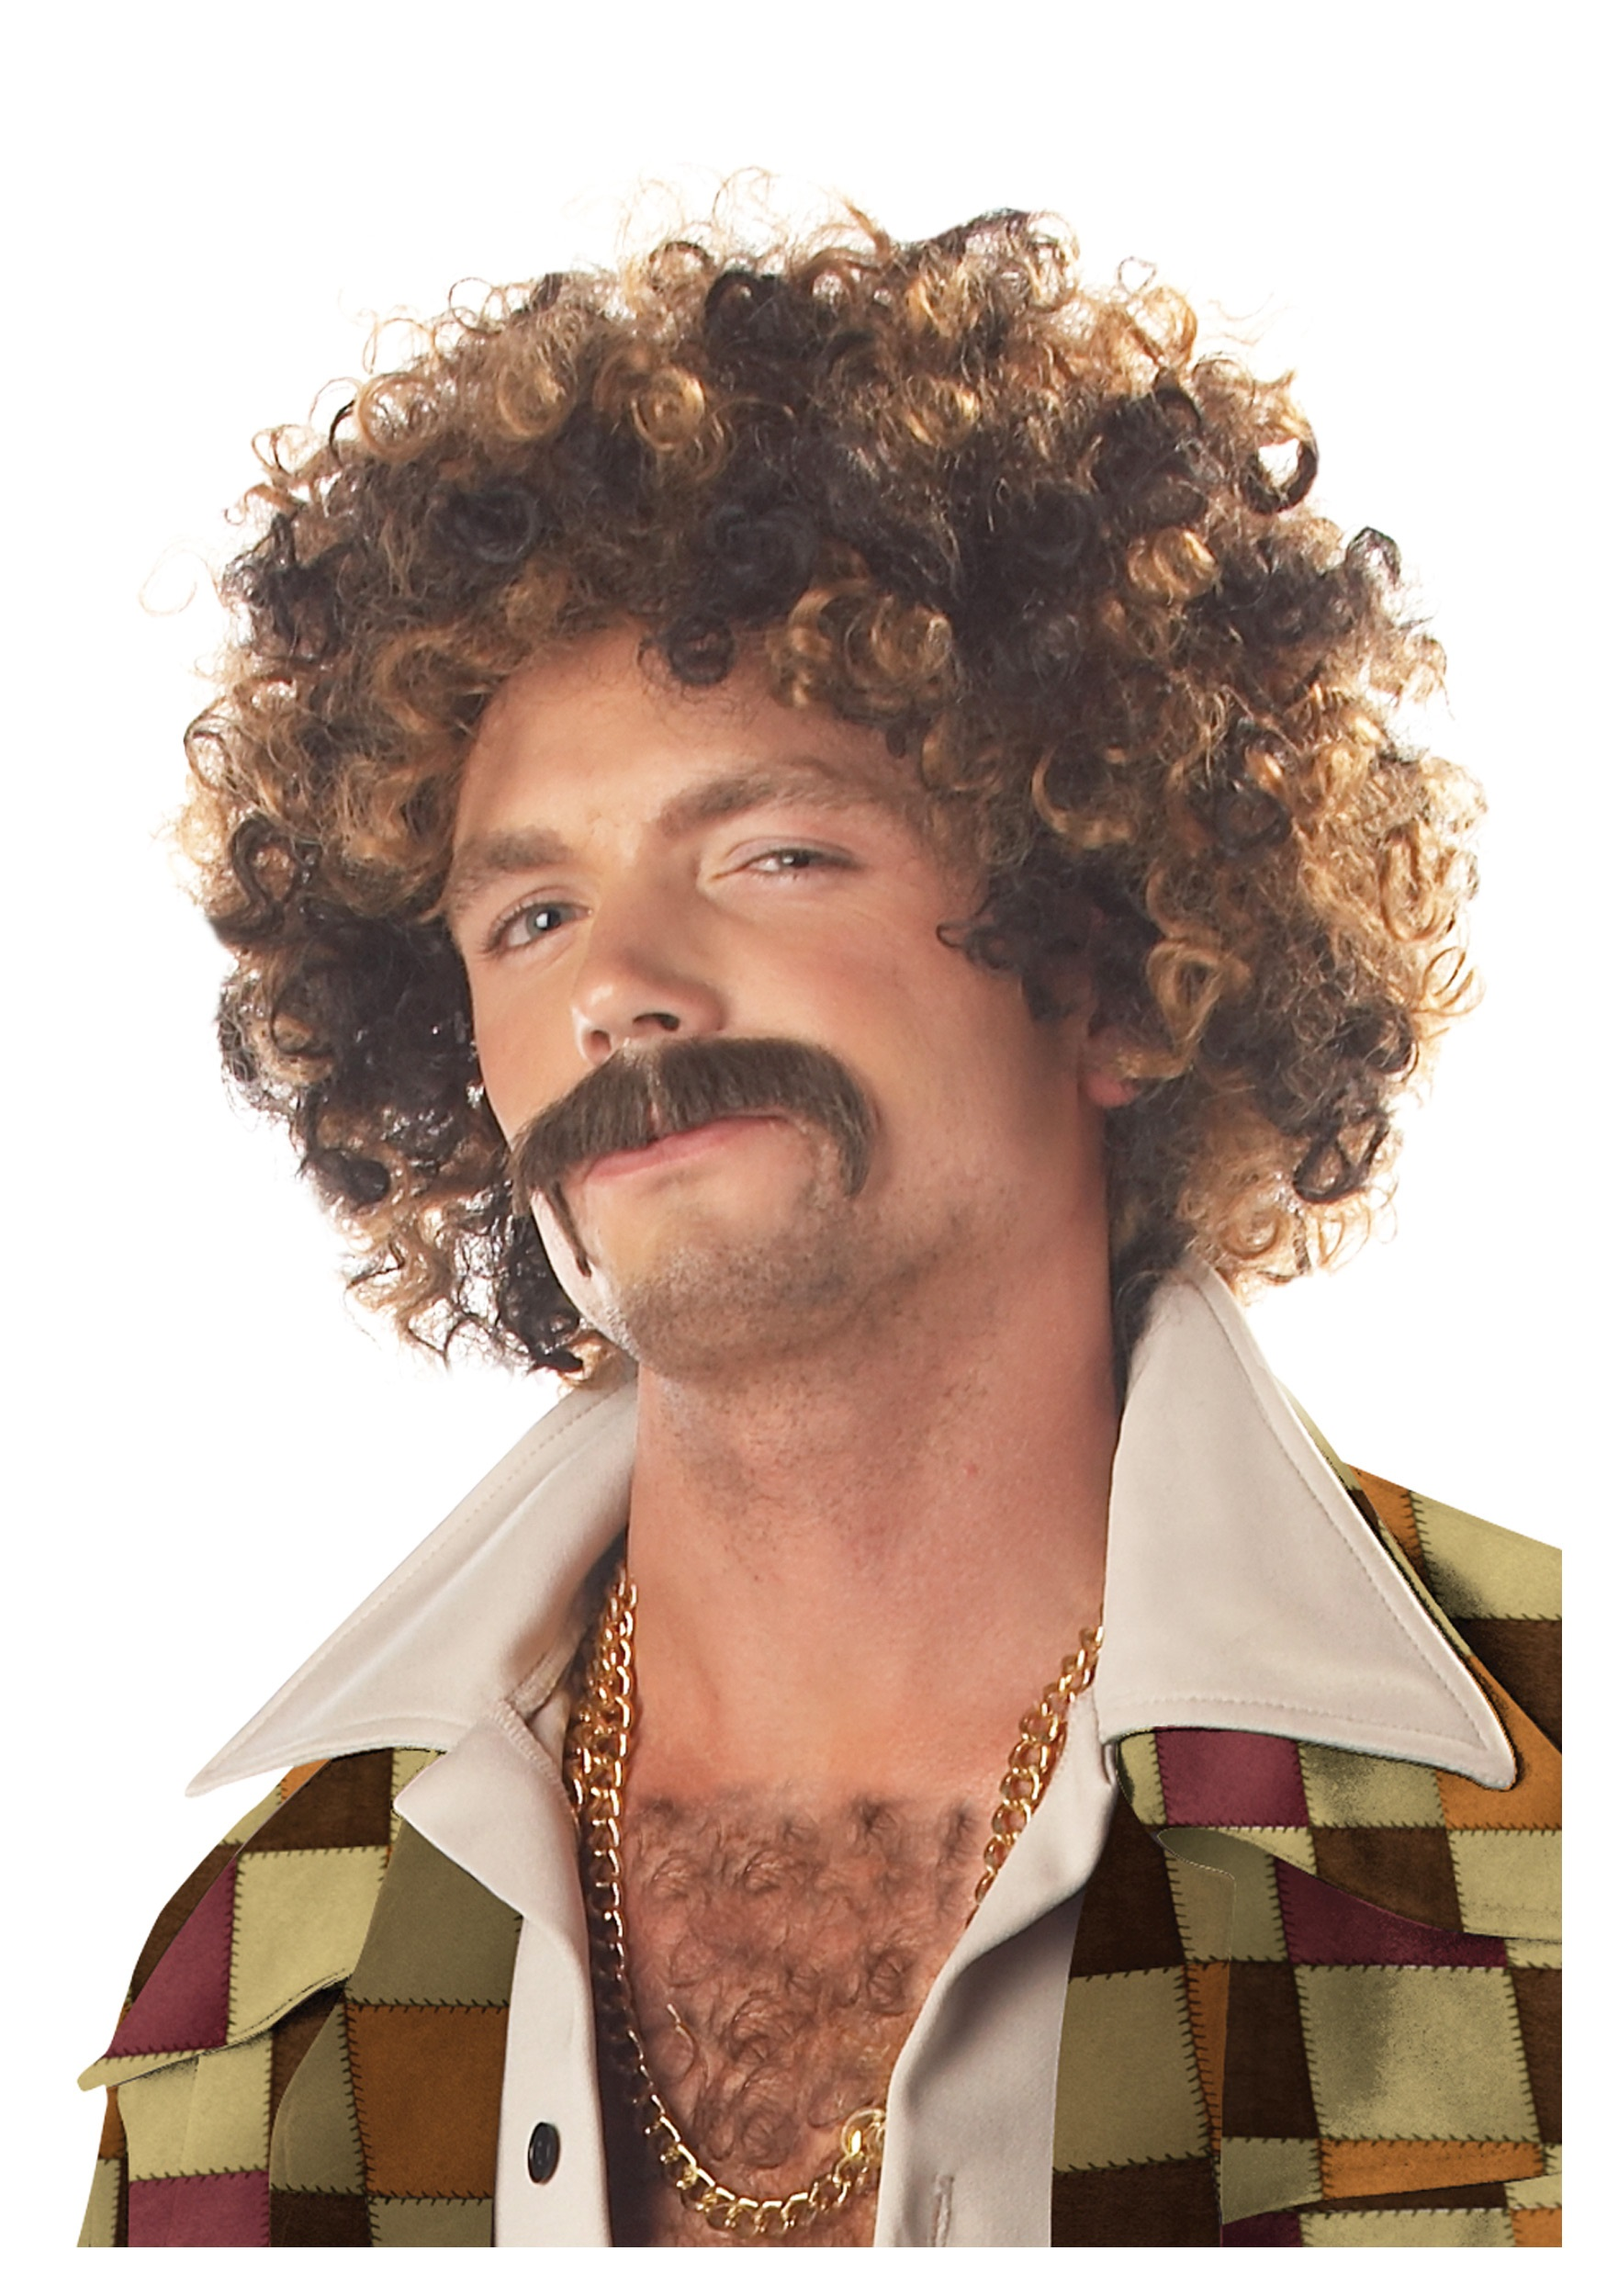 Disco dirt bag wig and mustache for adults